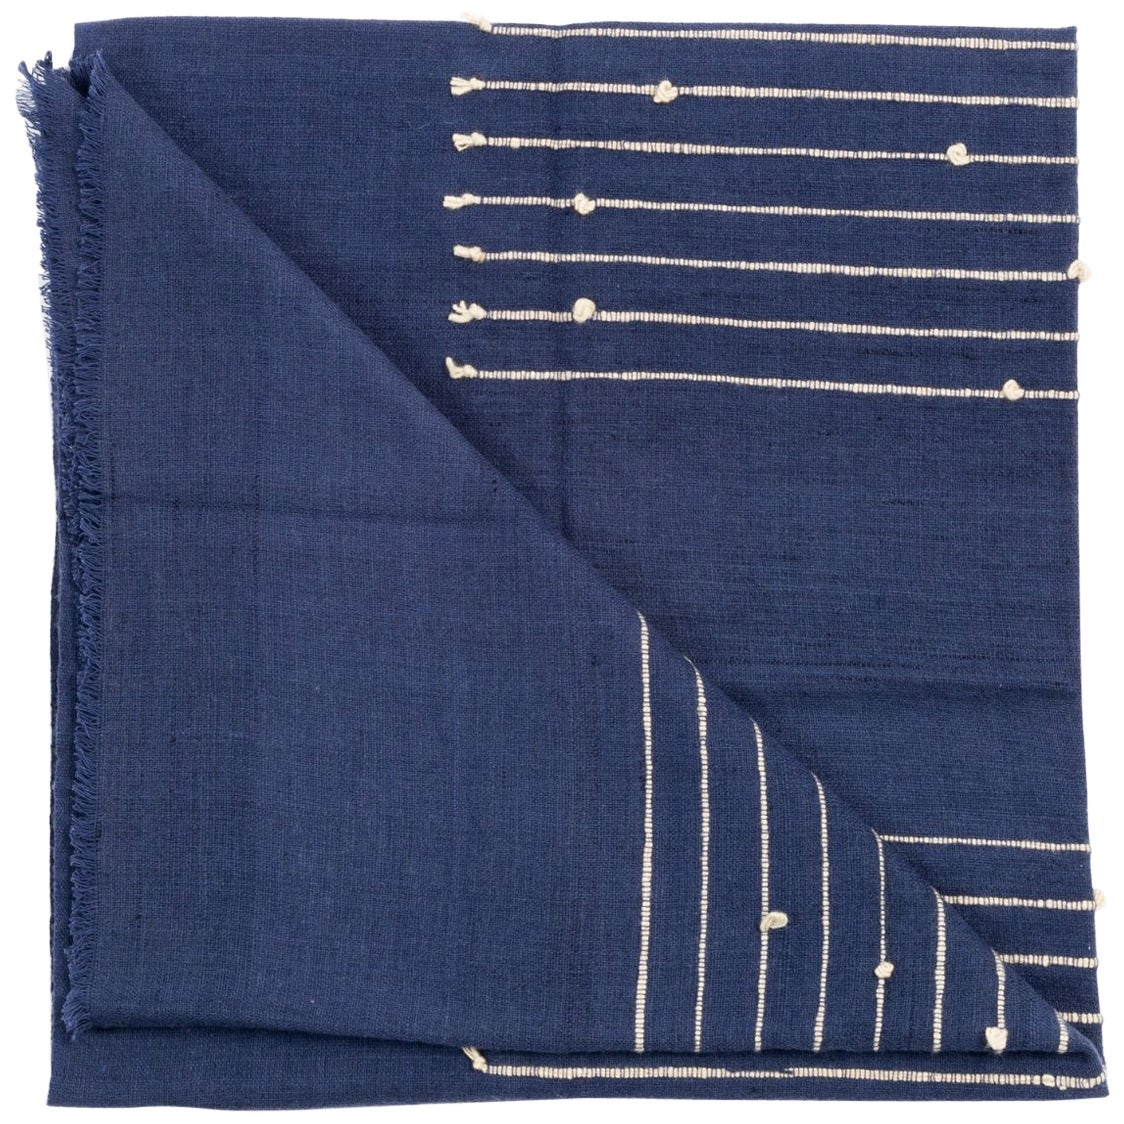 ROSEWOOD INDIGO Merino Cotton Handloom Throw / Blanket In Stripes Design